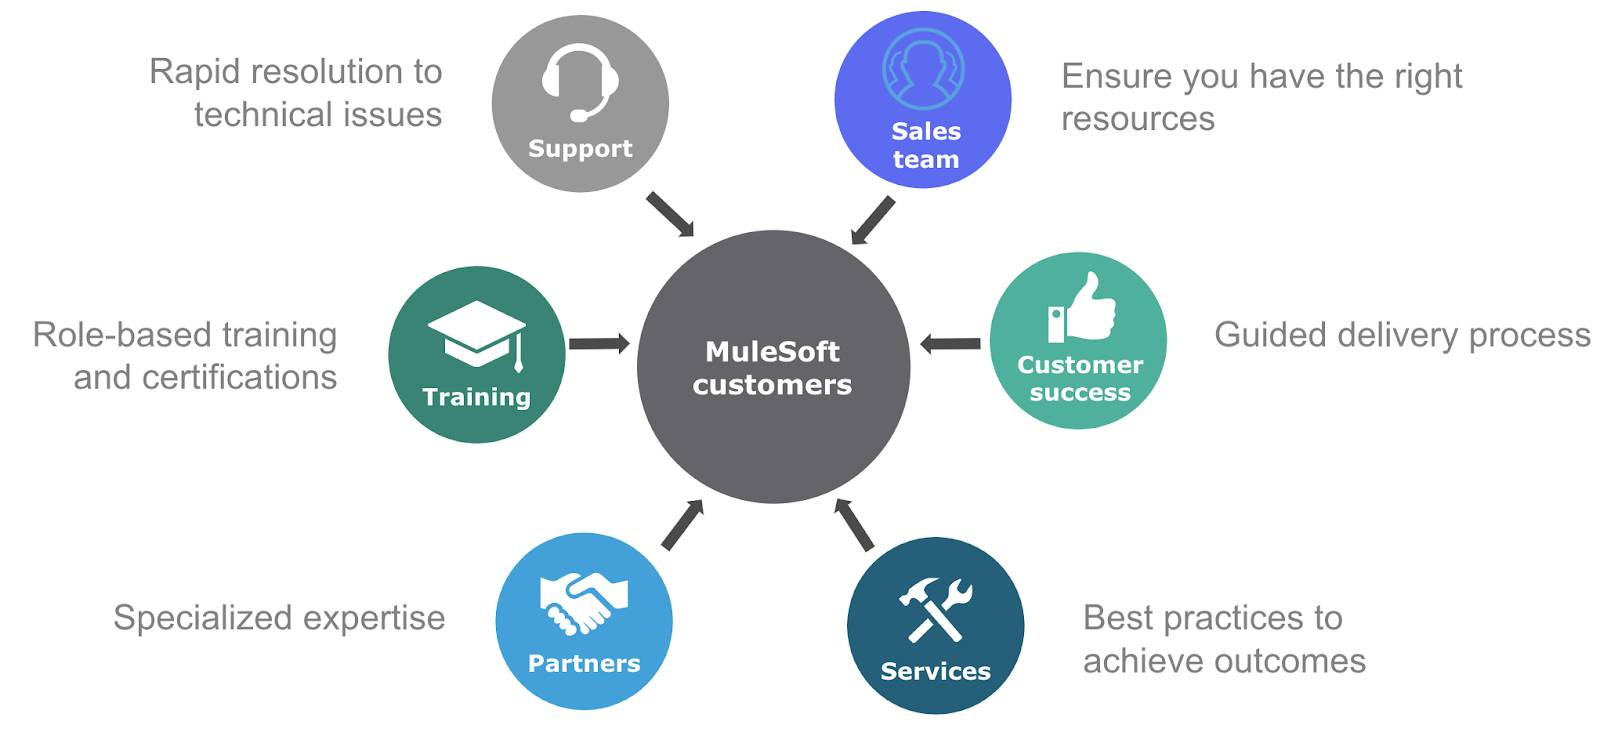 Catalyst ecosystem of Support, Training, Sales team, Customer Success, Services, and Partners